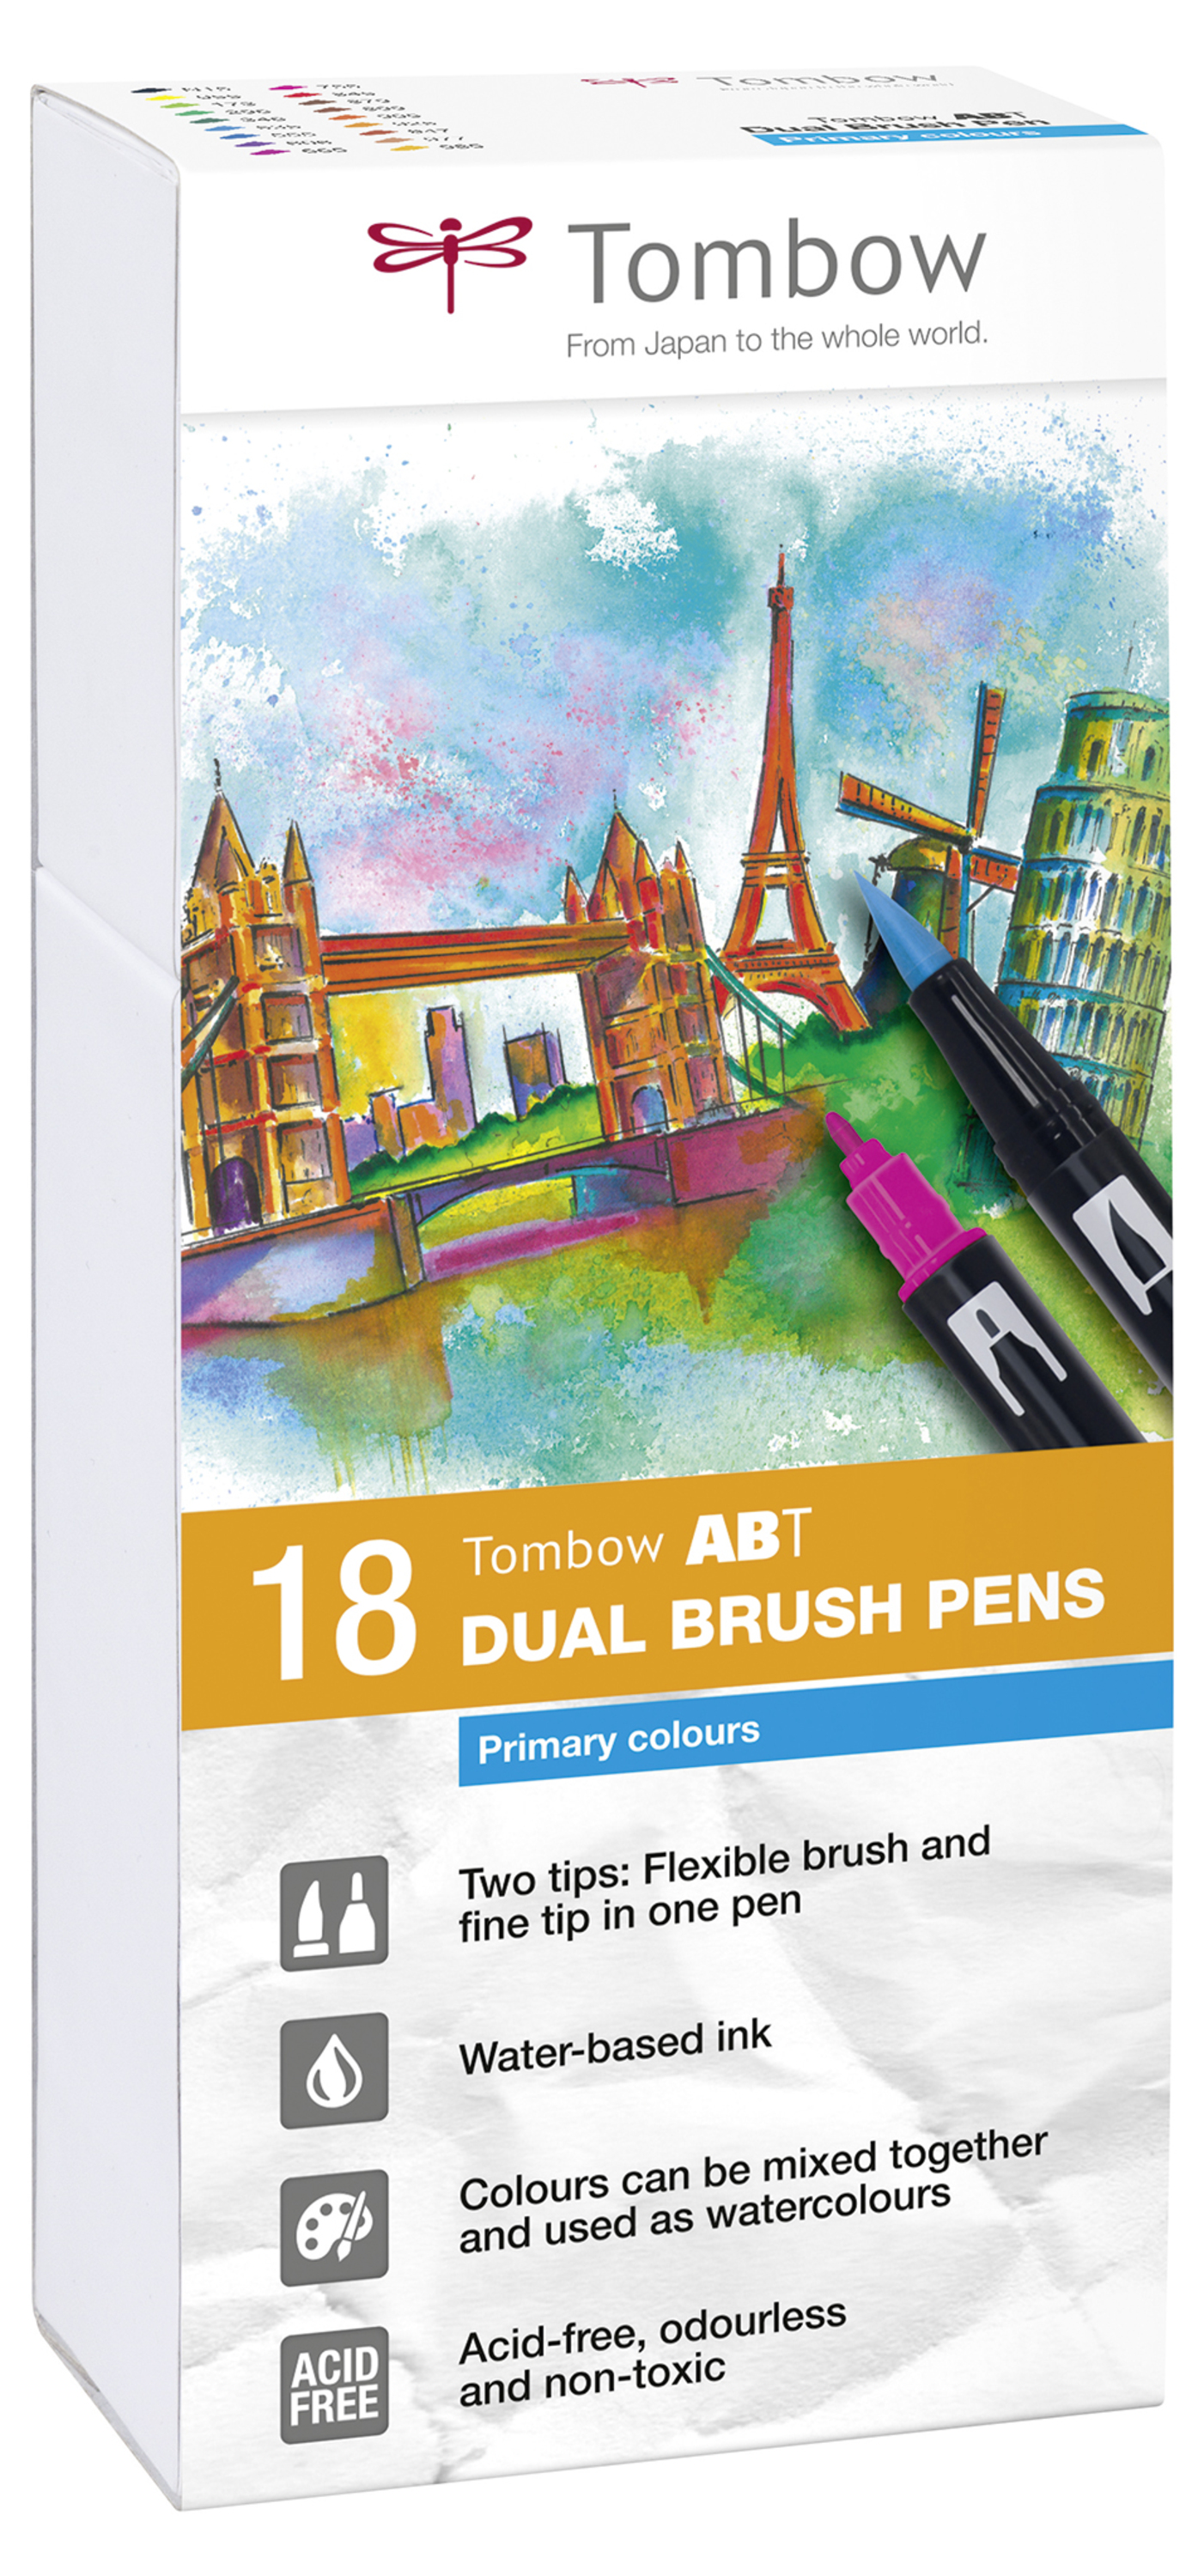 Tombow ABT Dual Brush Pen 2 tips Primary Colours PK18